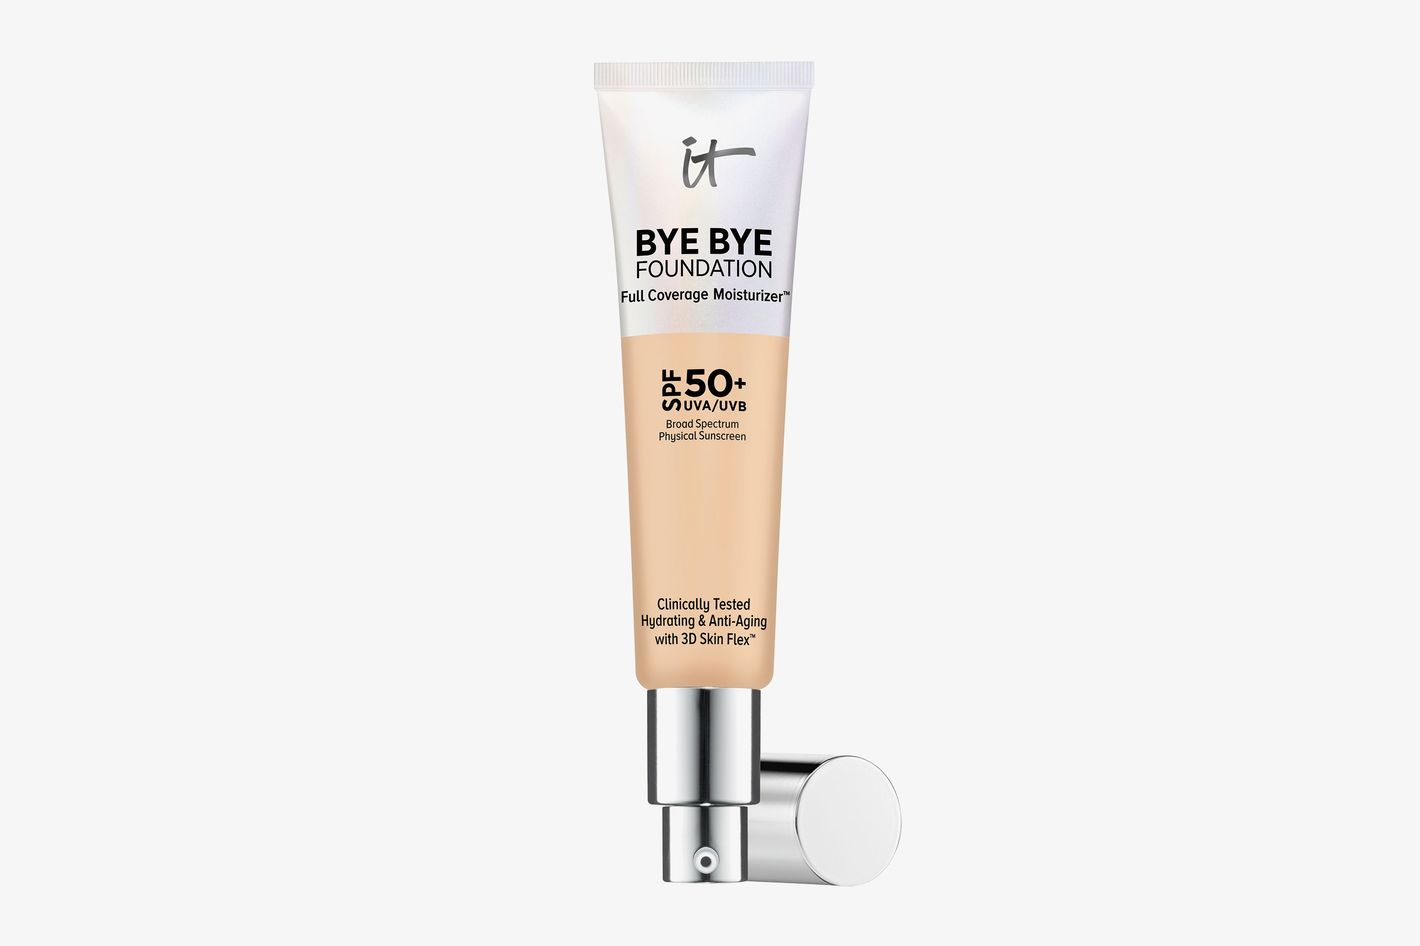 Bye Bye Foundation Full Coverage Moisturizer with SPF 50+ Light Medium